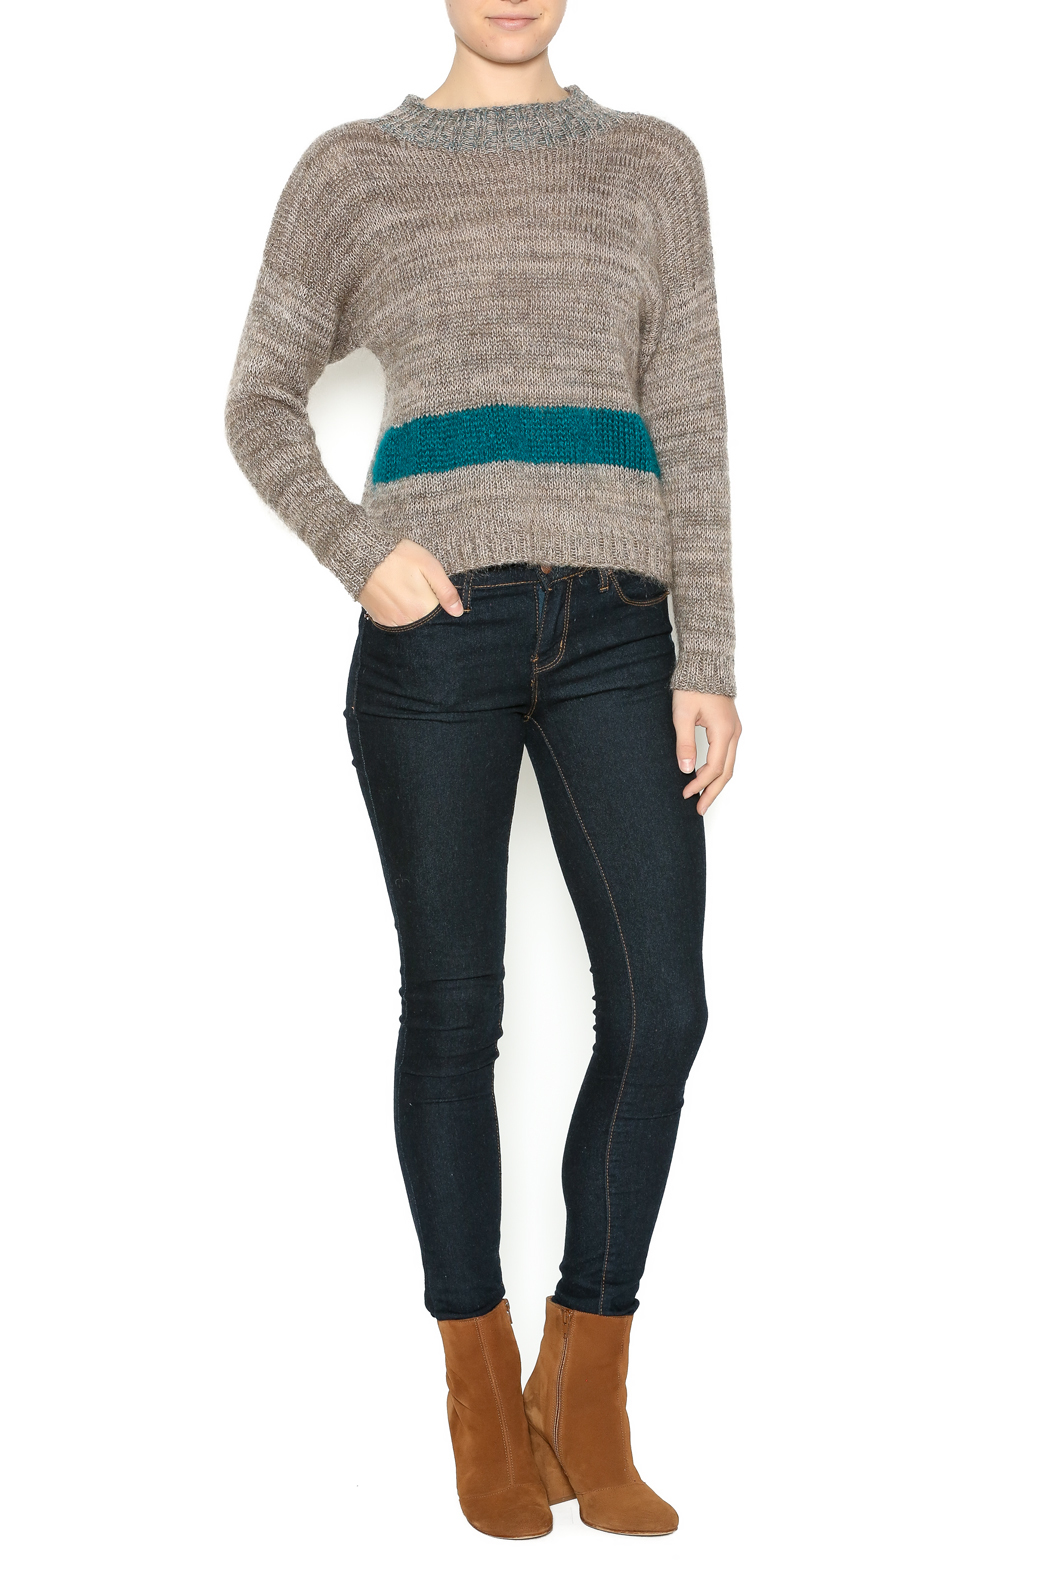 DC KNITS Tan Mohair Sweater - Front Full Image